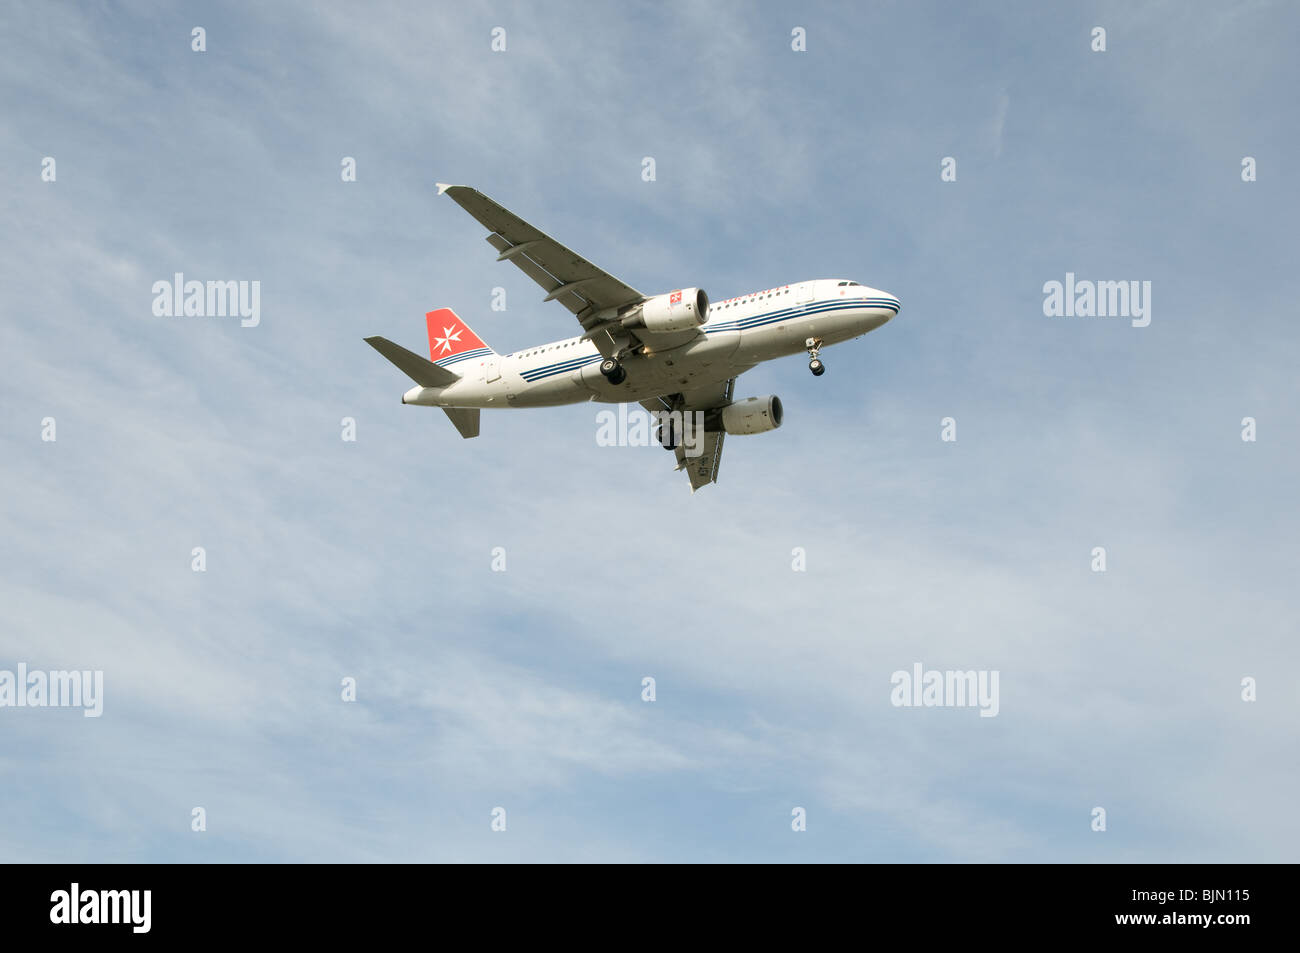 An Airbus A319-111 registration 9H-AEM comes into land at Malta International Airport, Luqa, Malta Stock Photo